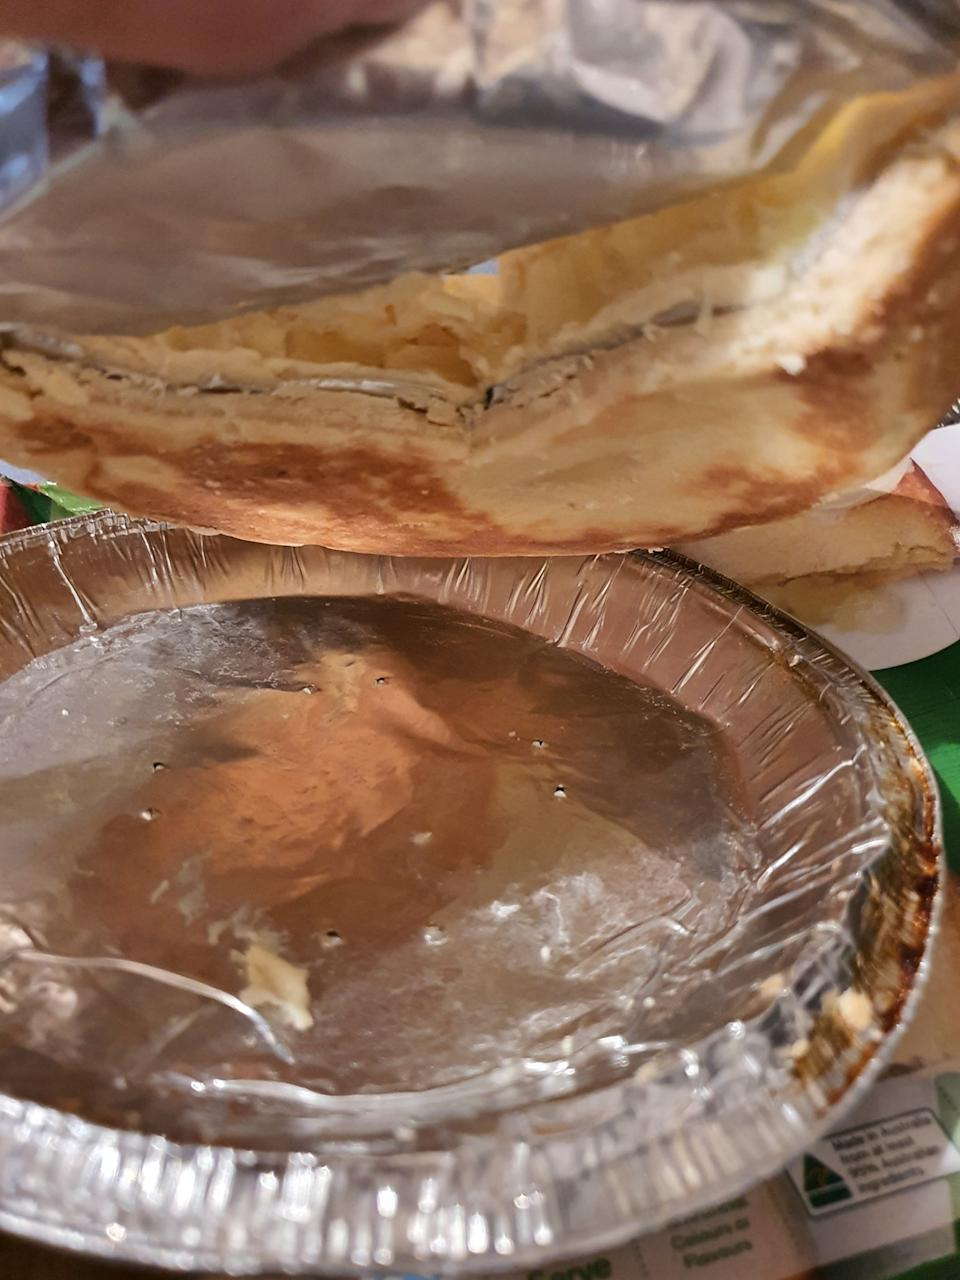 A layer of aluminium foil squished into the pie.